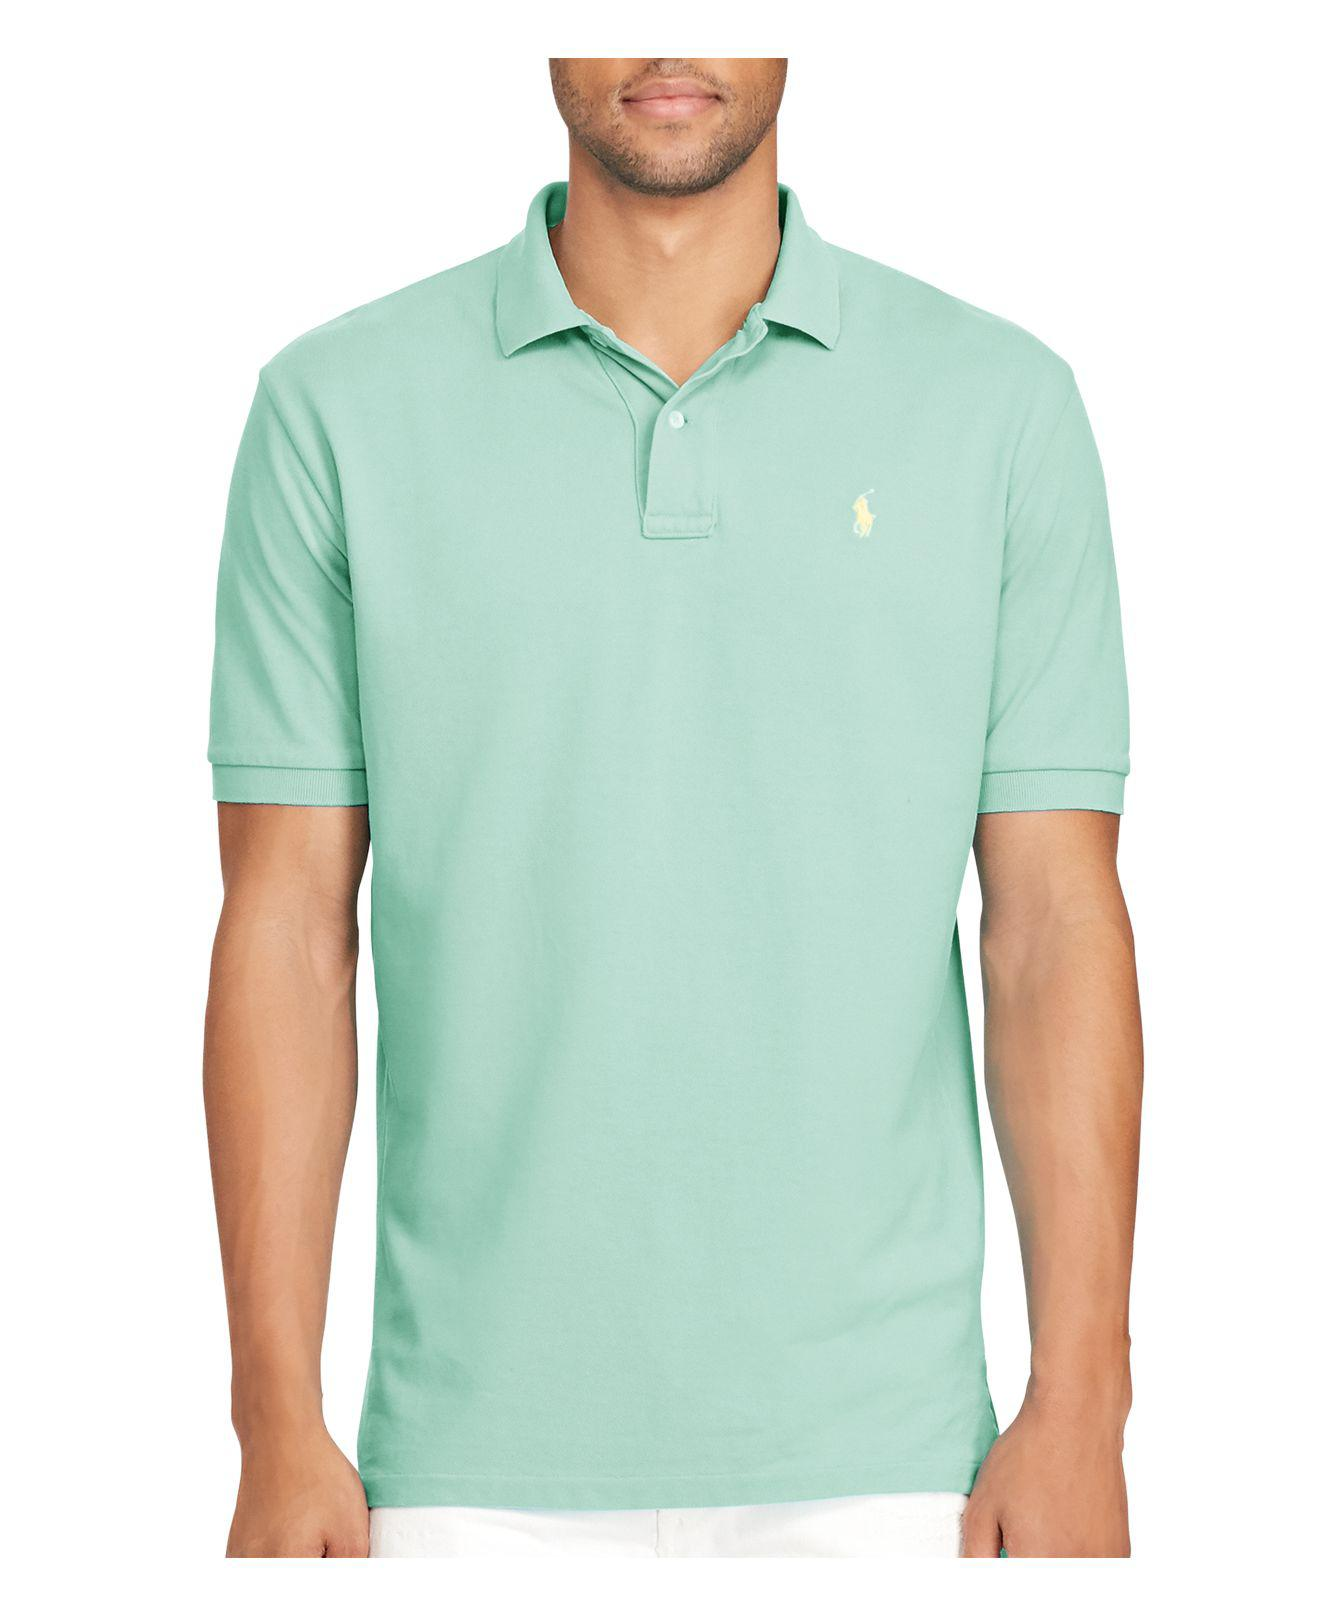 14794d96 Lyst - Polo Ralph Lauren Custom Fit Weathered Mesh Polo in Green for Men